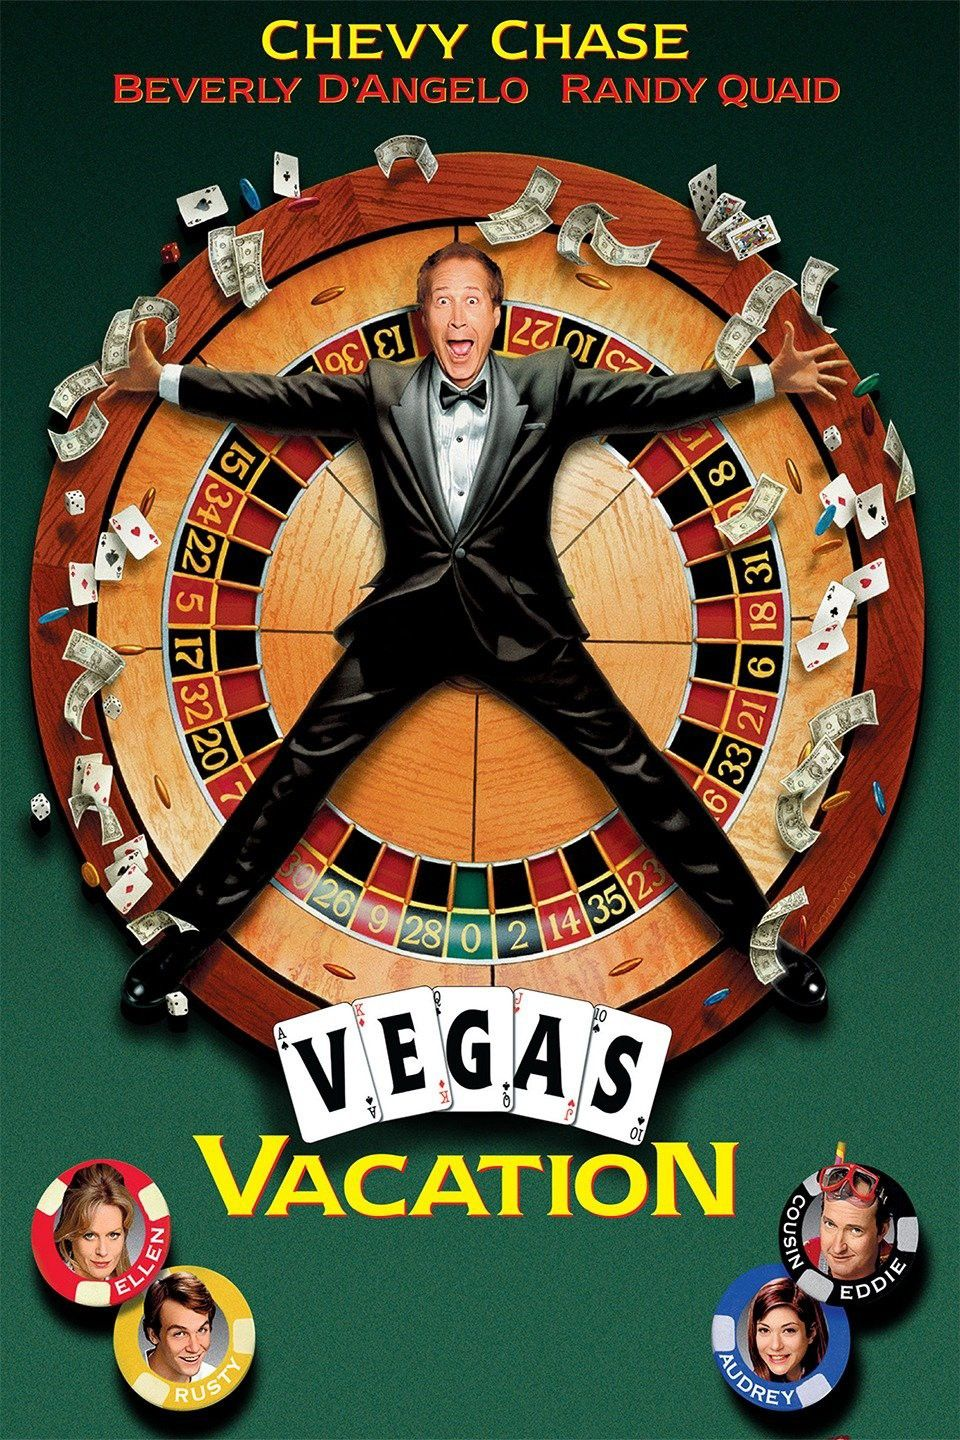 Vegas Vacation, Vacation Movie, Vacation